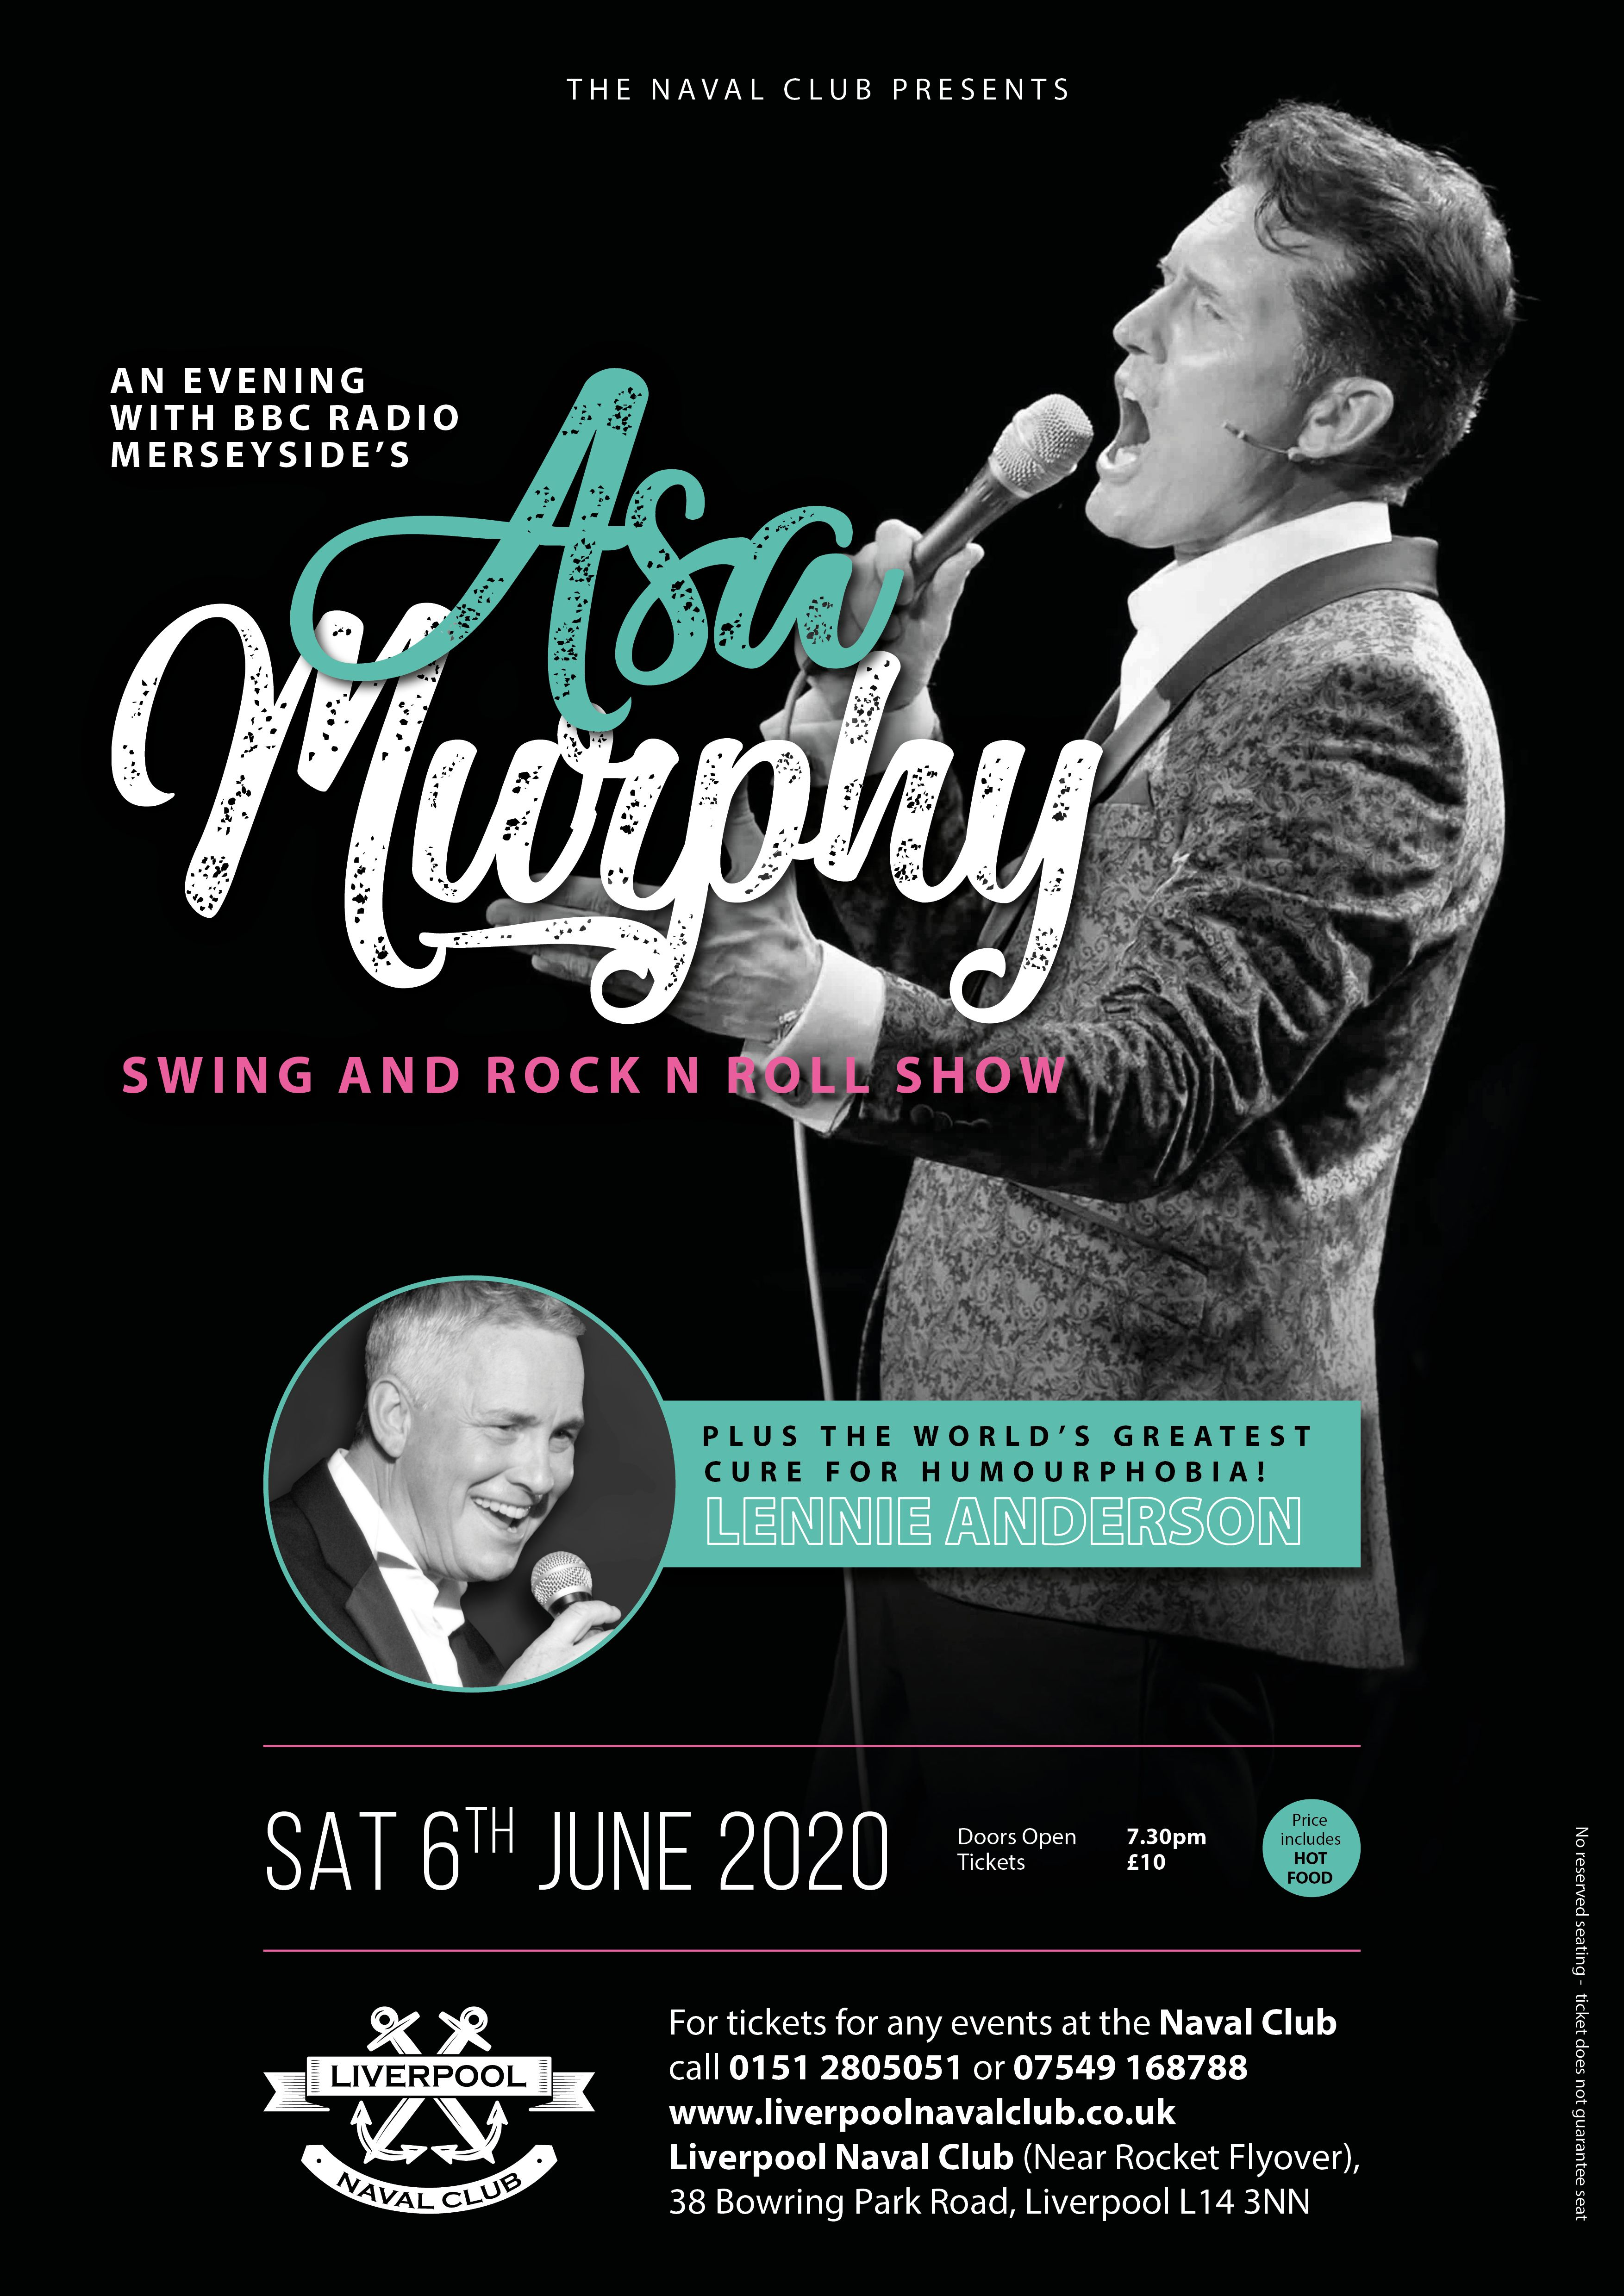 An Evening with BBC Radio Merseyside's Asa Murphy - Swing and Rock n Roll Show - Plus Comic Lennie Anderson